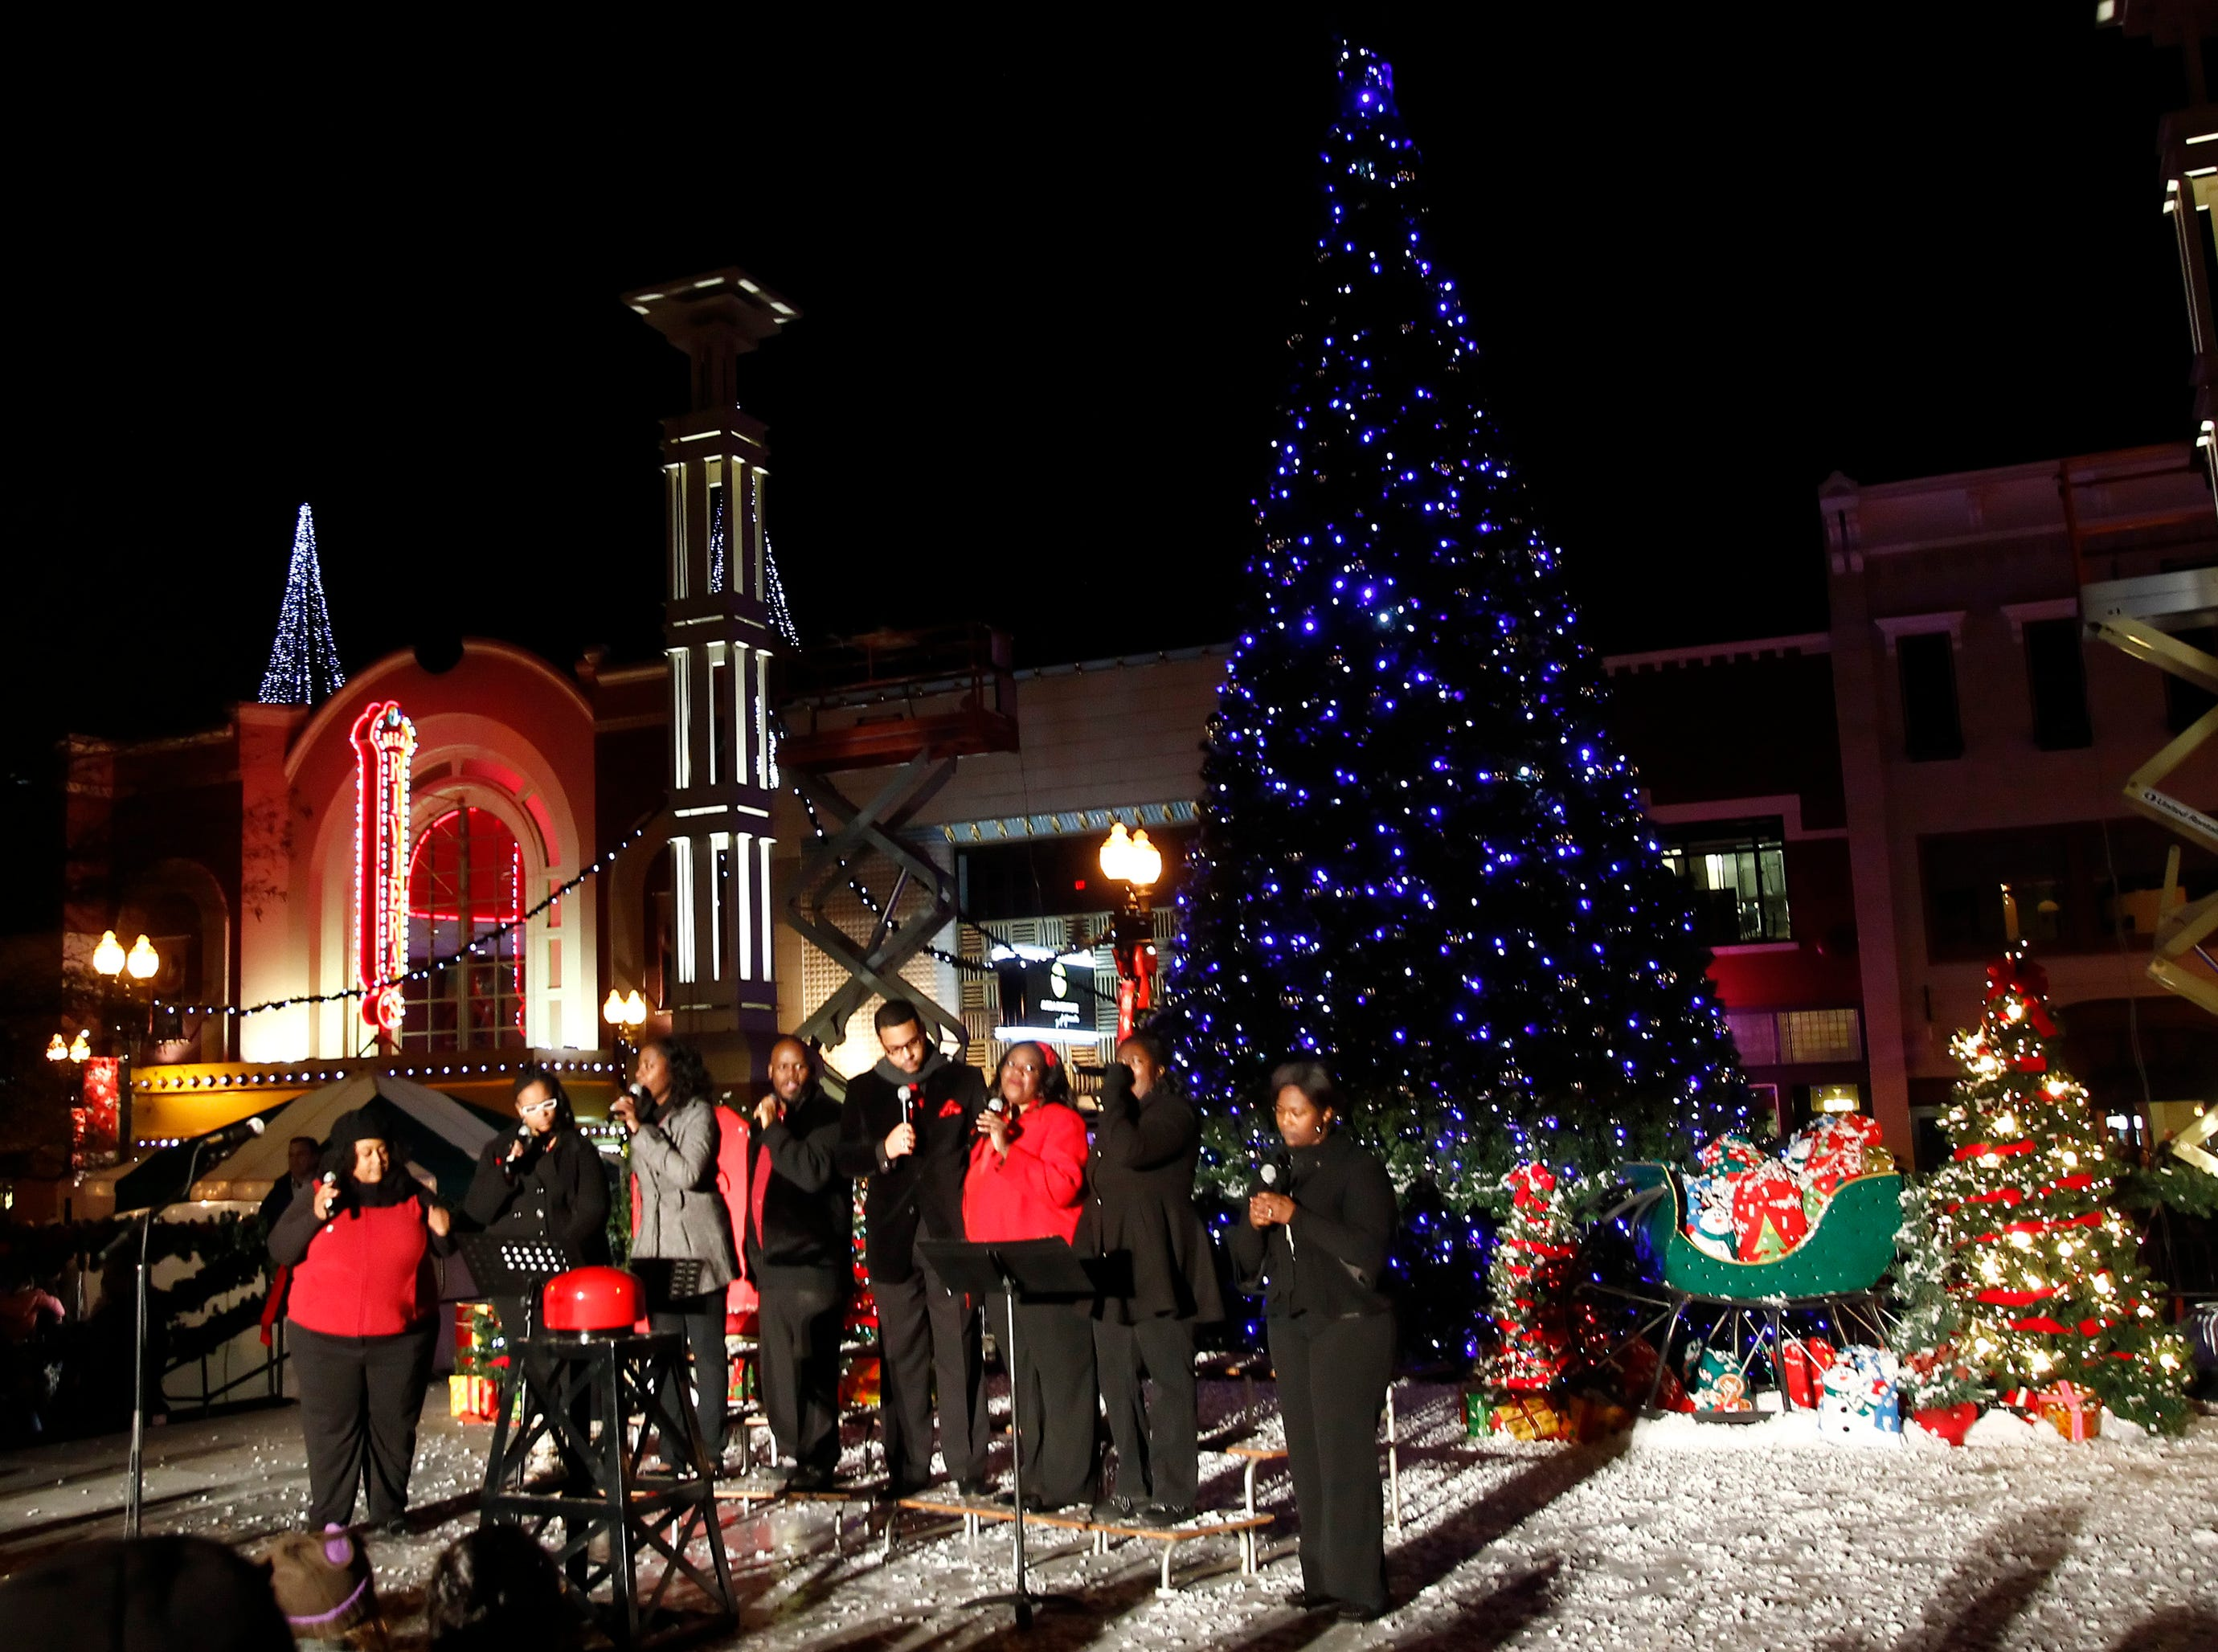 The Unity Choir performs during the lighting of the Christmas tree at Market Square Friday, Nov. 25, 2011.